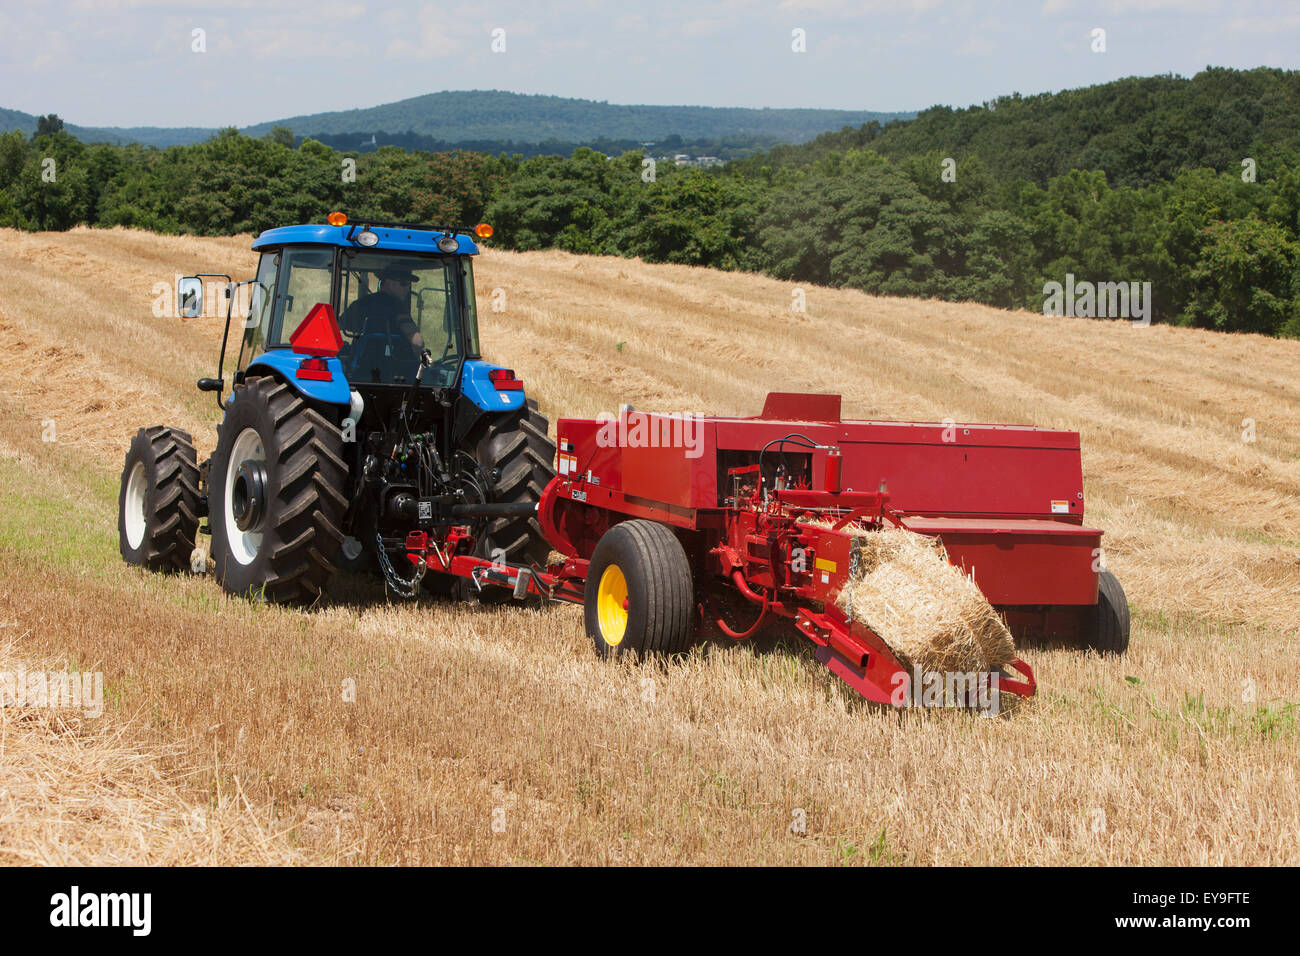 New Holland Tractor Bedding : Square baler stock photos images alamy